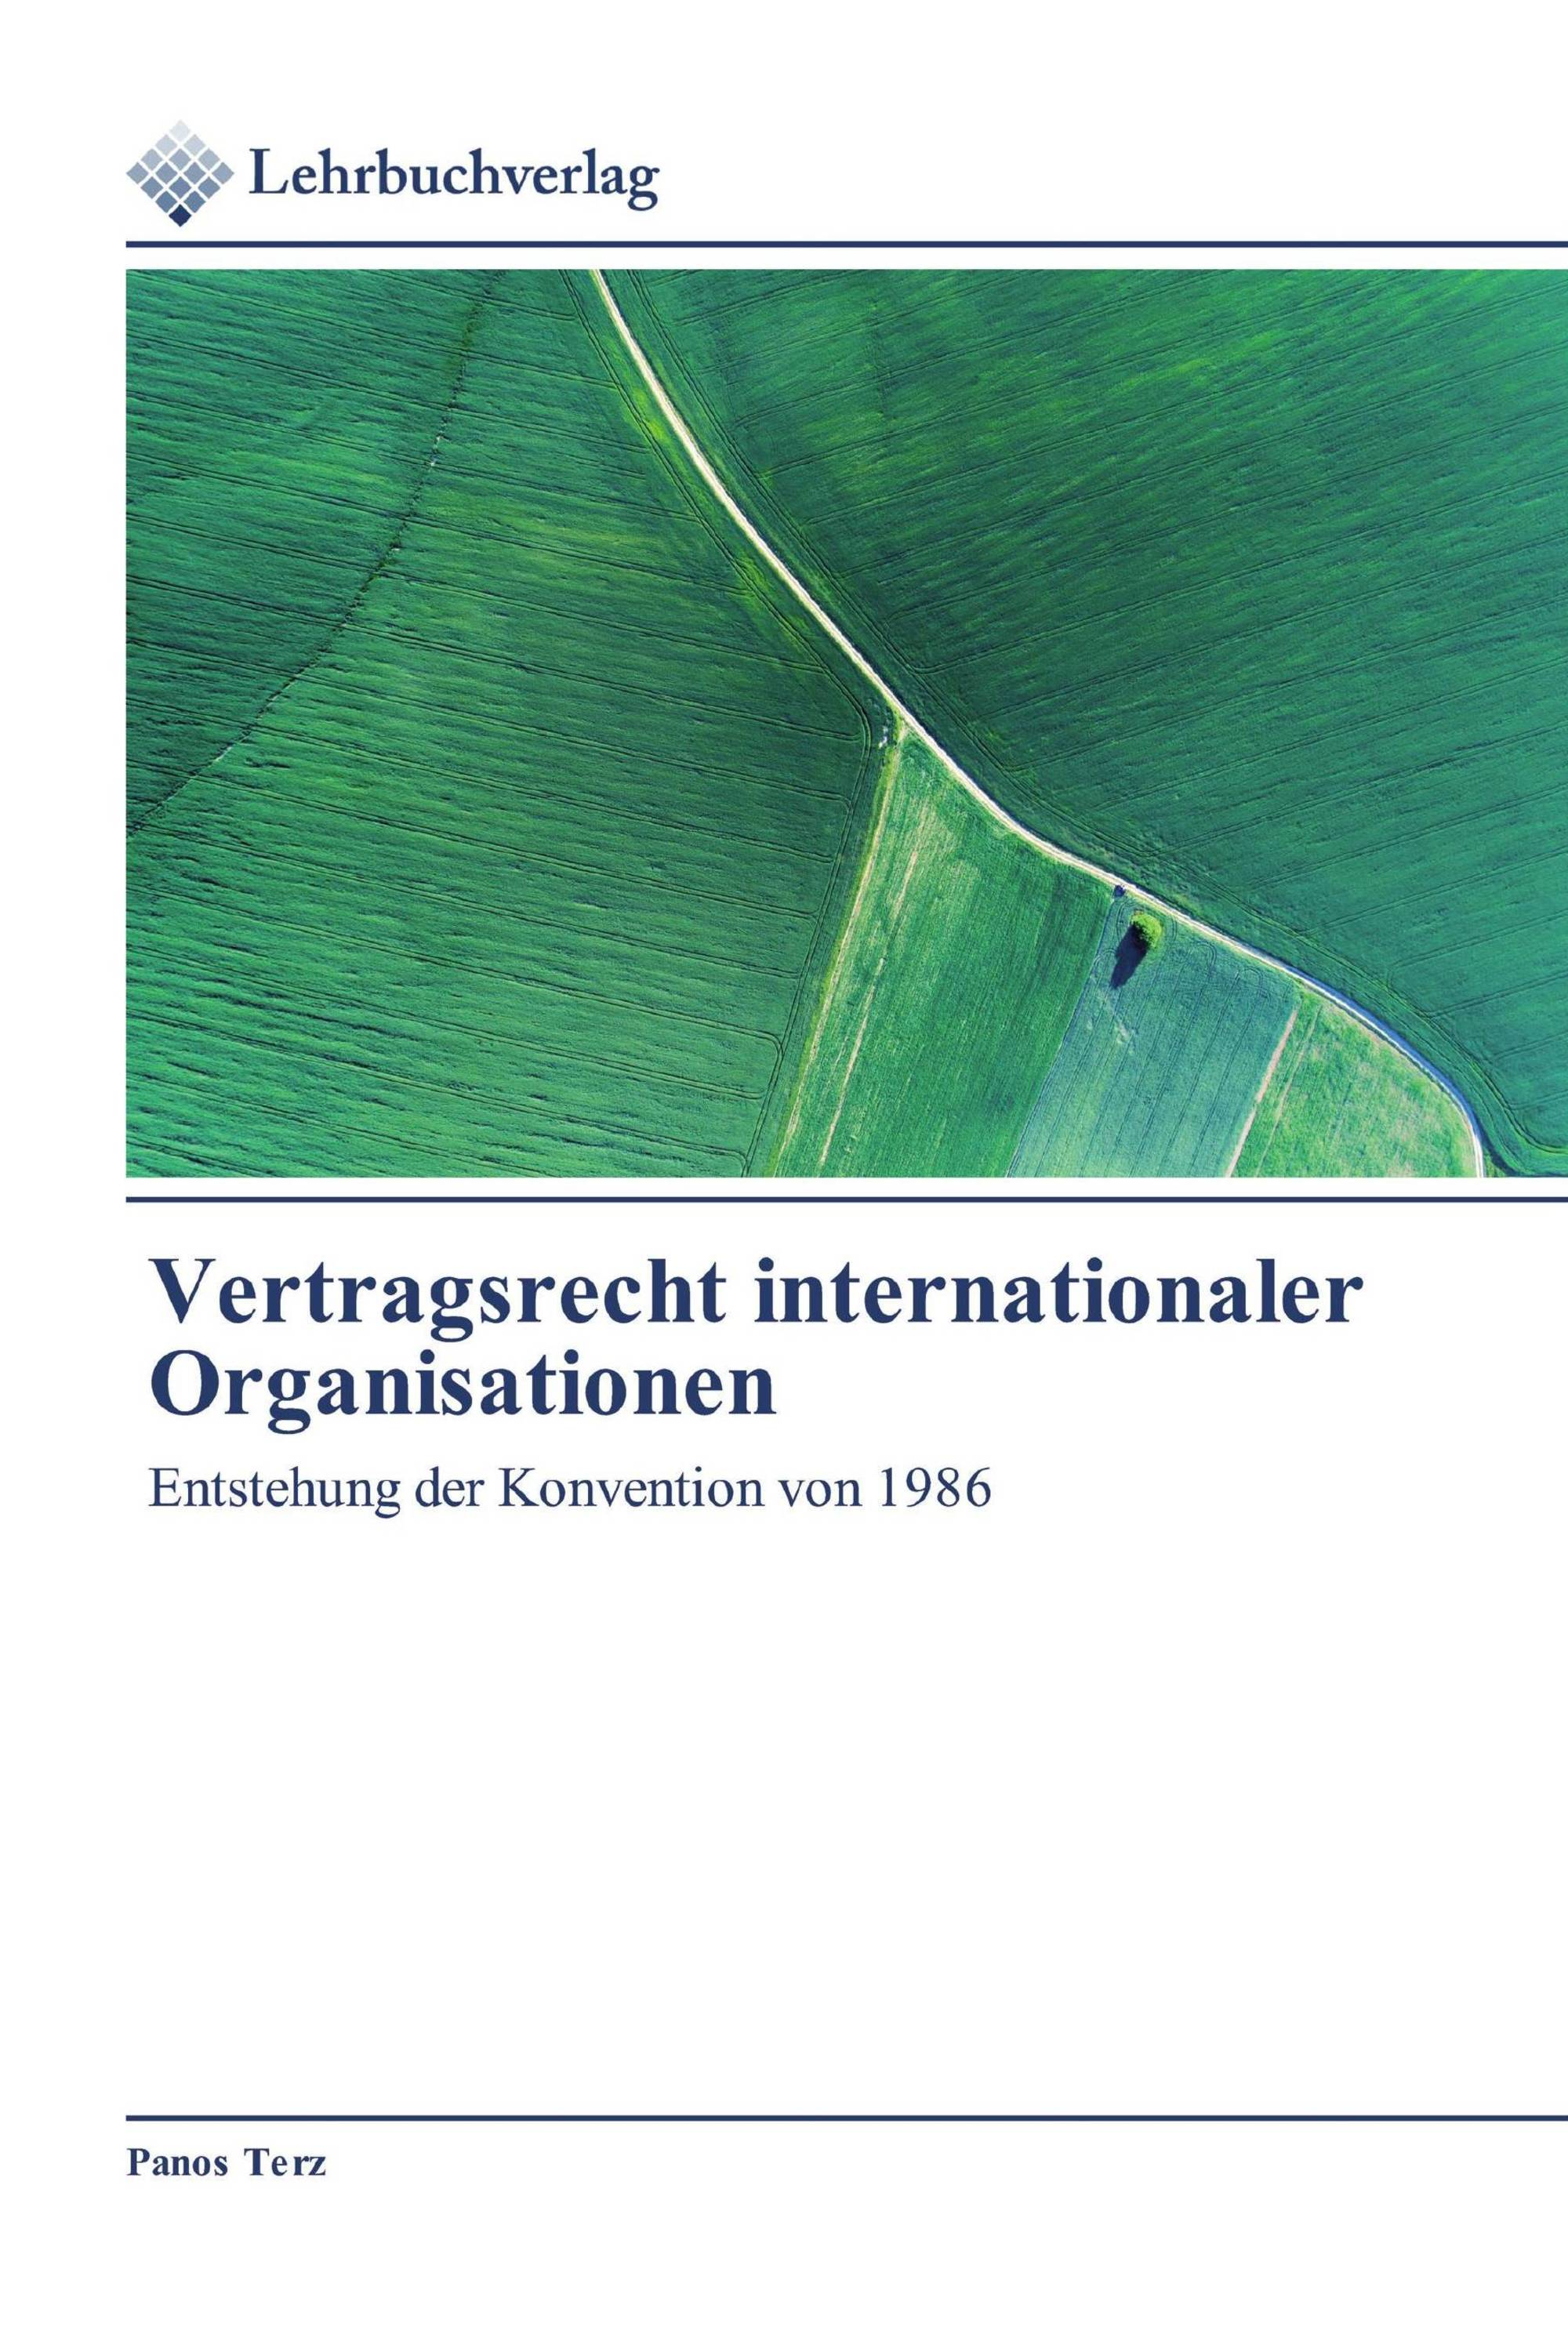 Vertragsrecht internationaler Organisationen